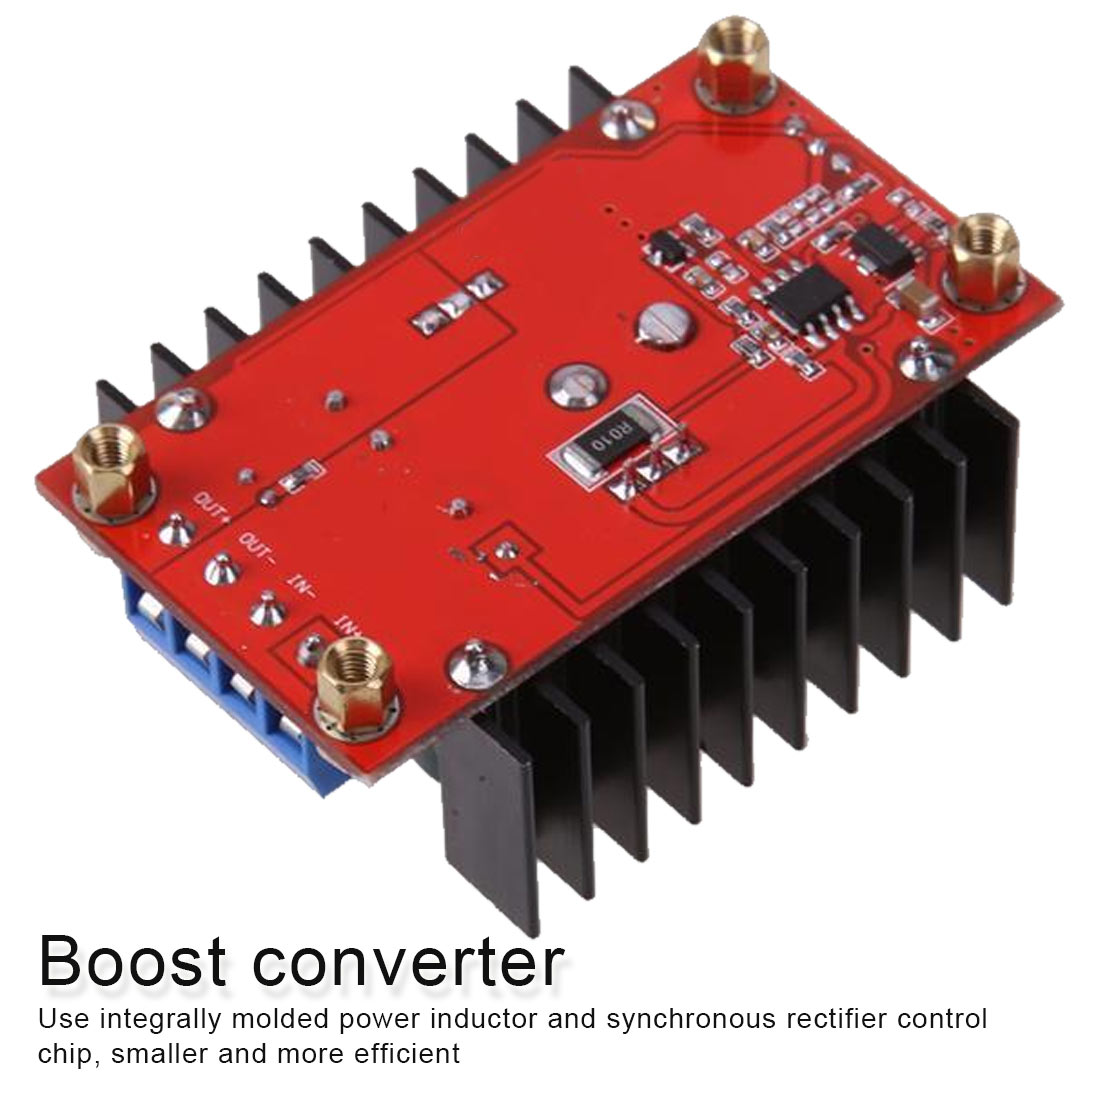 DC-DC 9A 150W Boost Converter Step Down Buck Converter Adjusted 12-32V To 12-35V Power Module